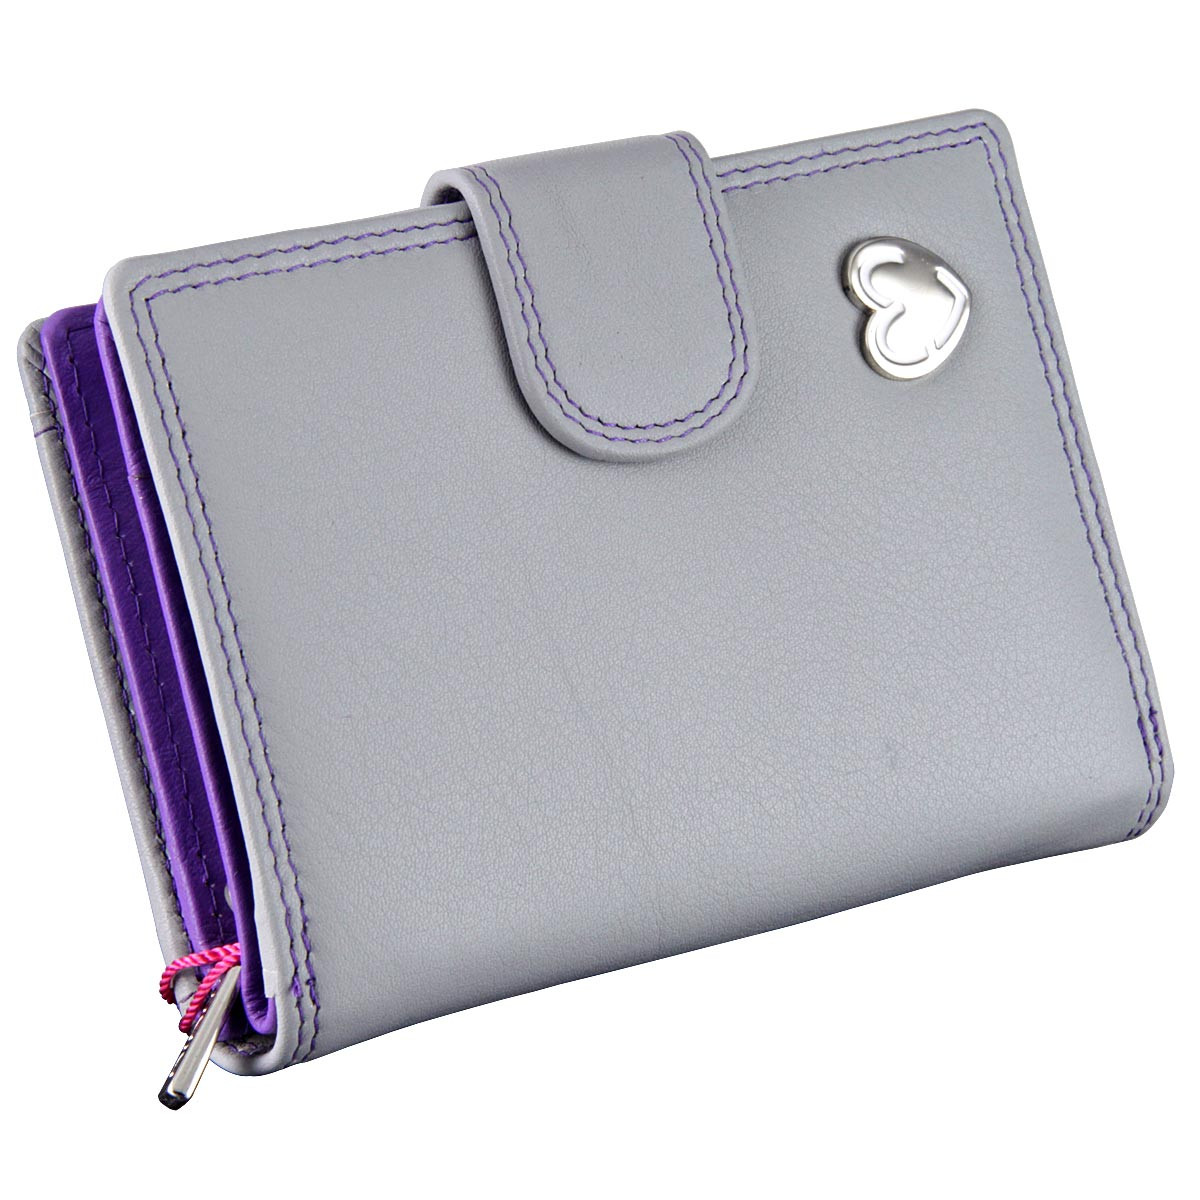 Wallet Purse with RFID Protection : Grey Tabitha 3118